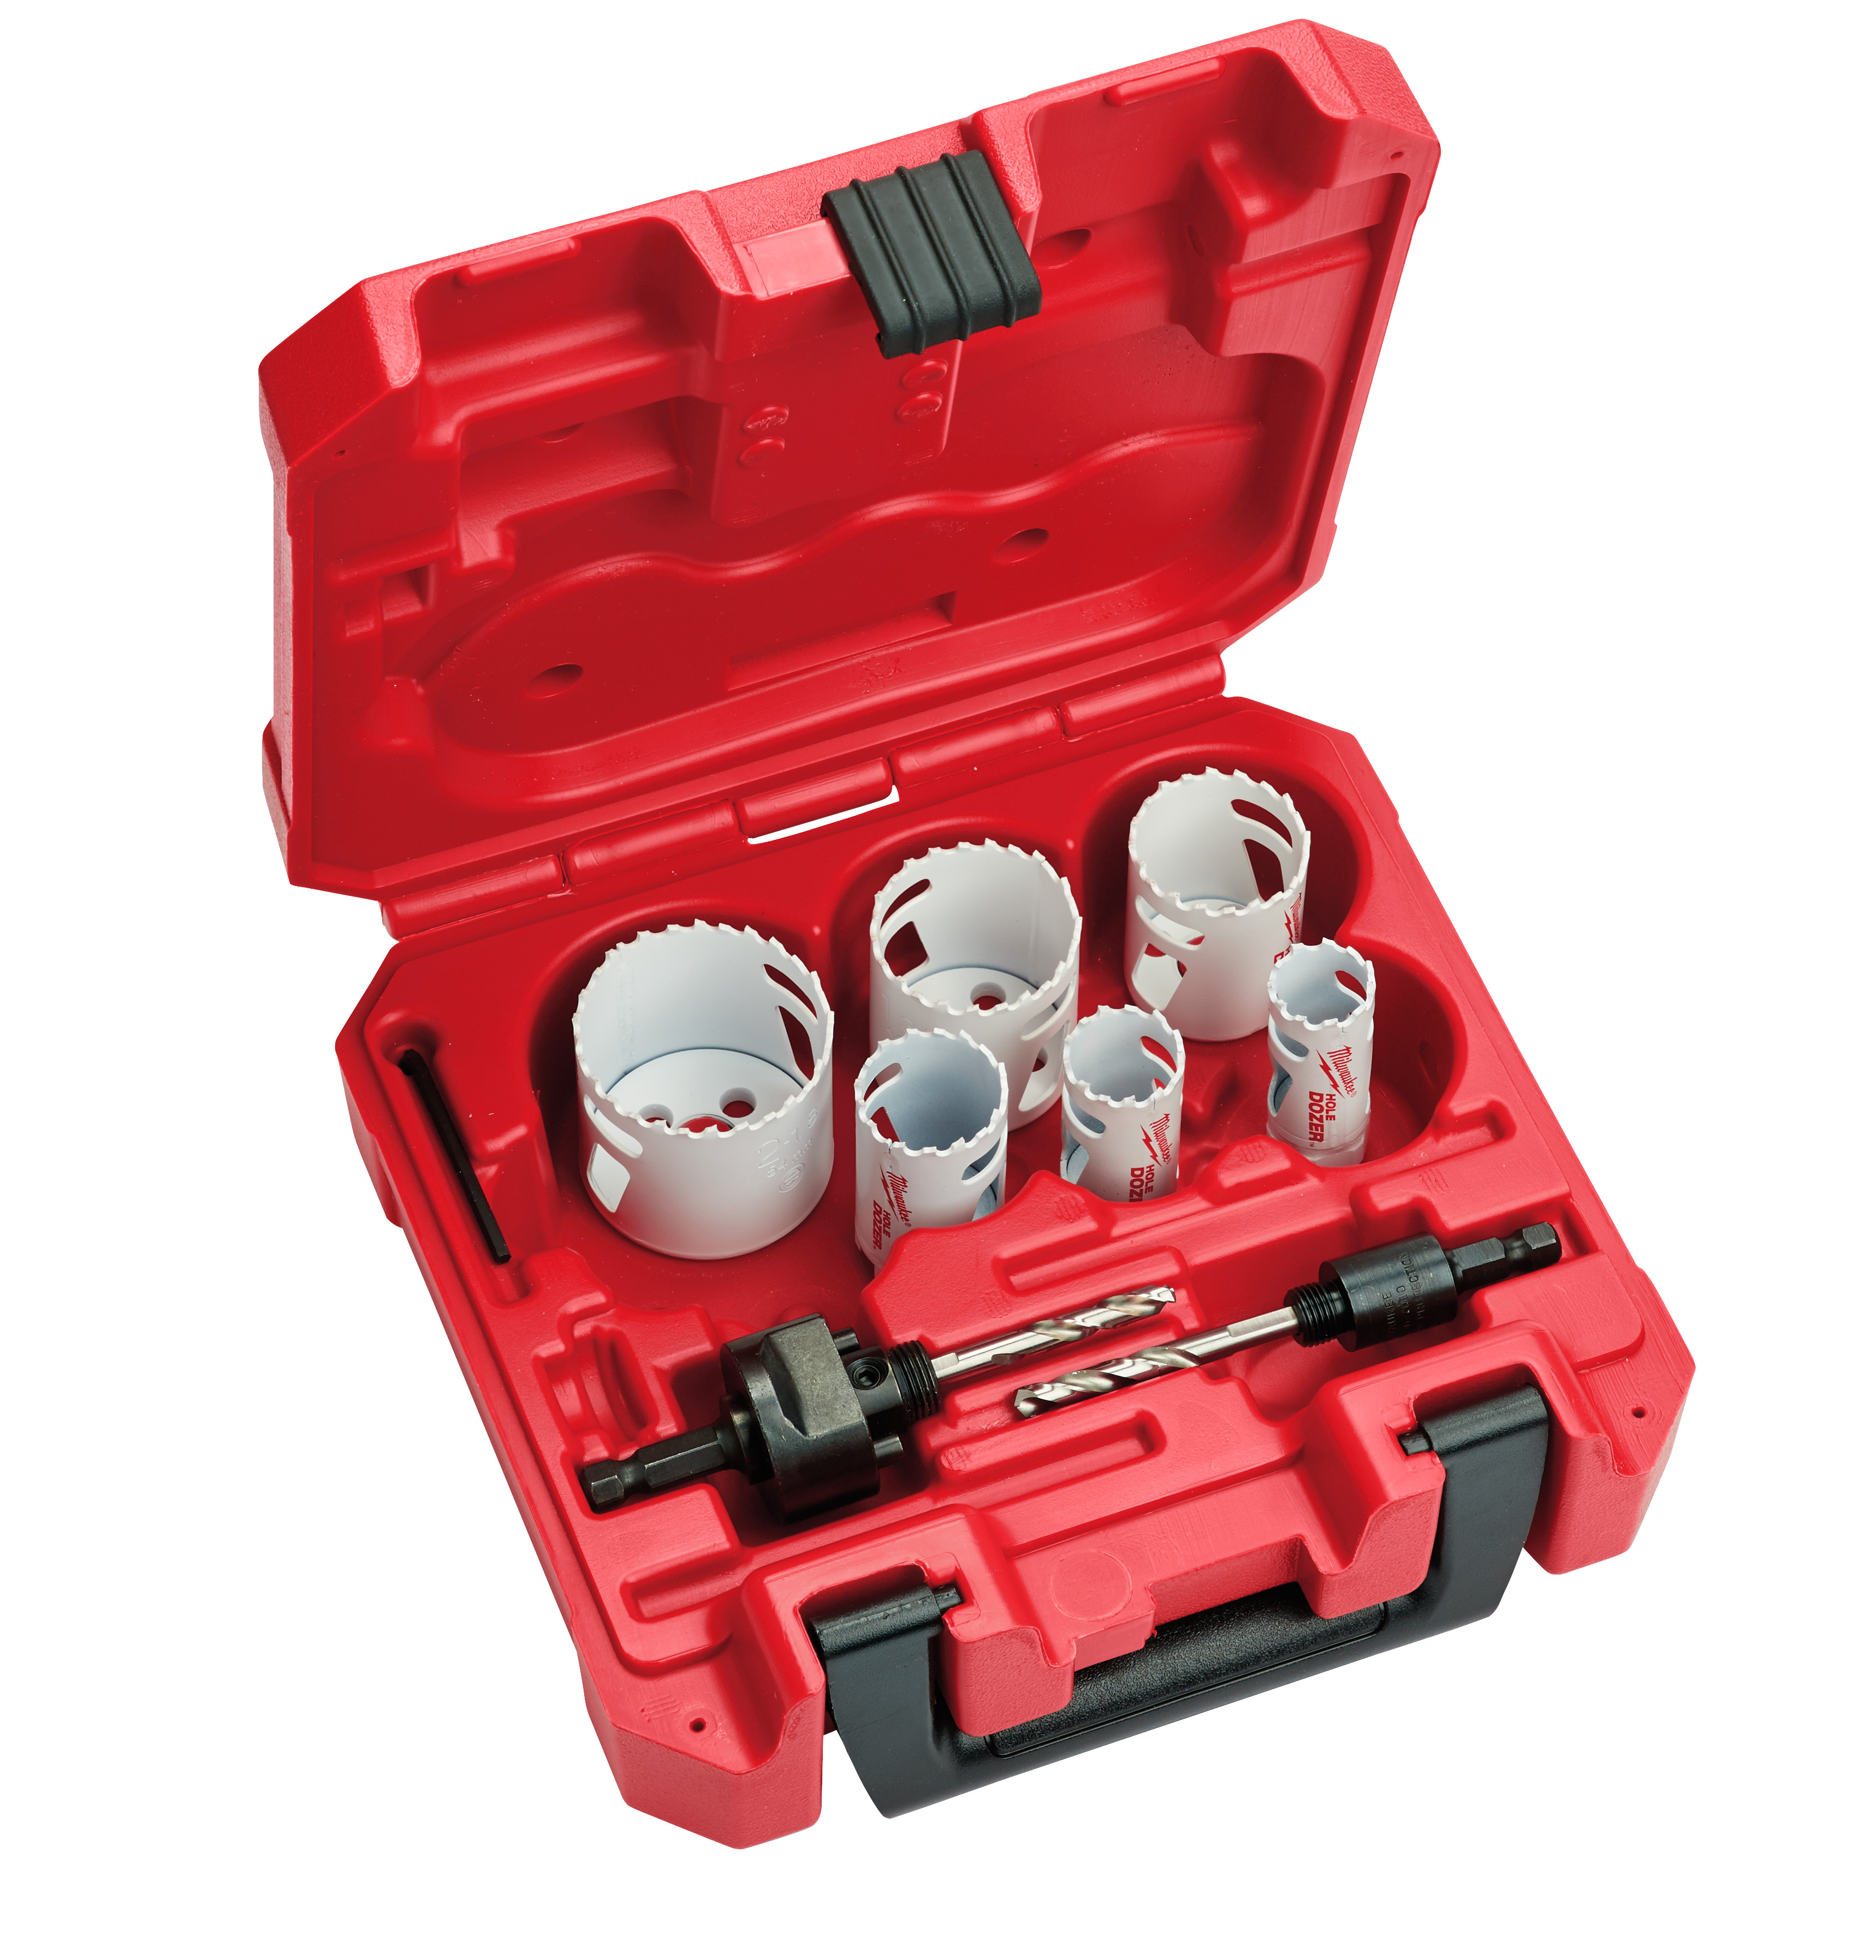 Milwaukee® 49-22-4074 Hole Dozer™ Locksmith's Hole Saw Kit, 8 Pieces, For Use With 49-56-7210, 49-56-7240, 49-56-7250 and 49-56-9100 Quick-Change Arbor, Bi-Metal/HSS